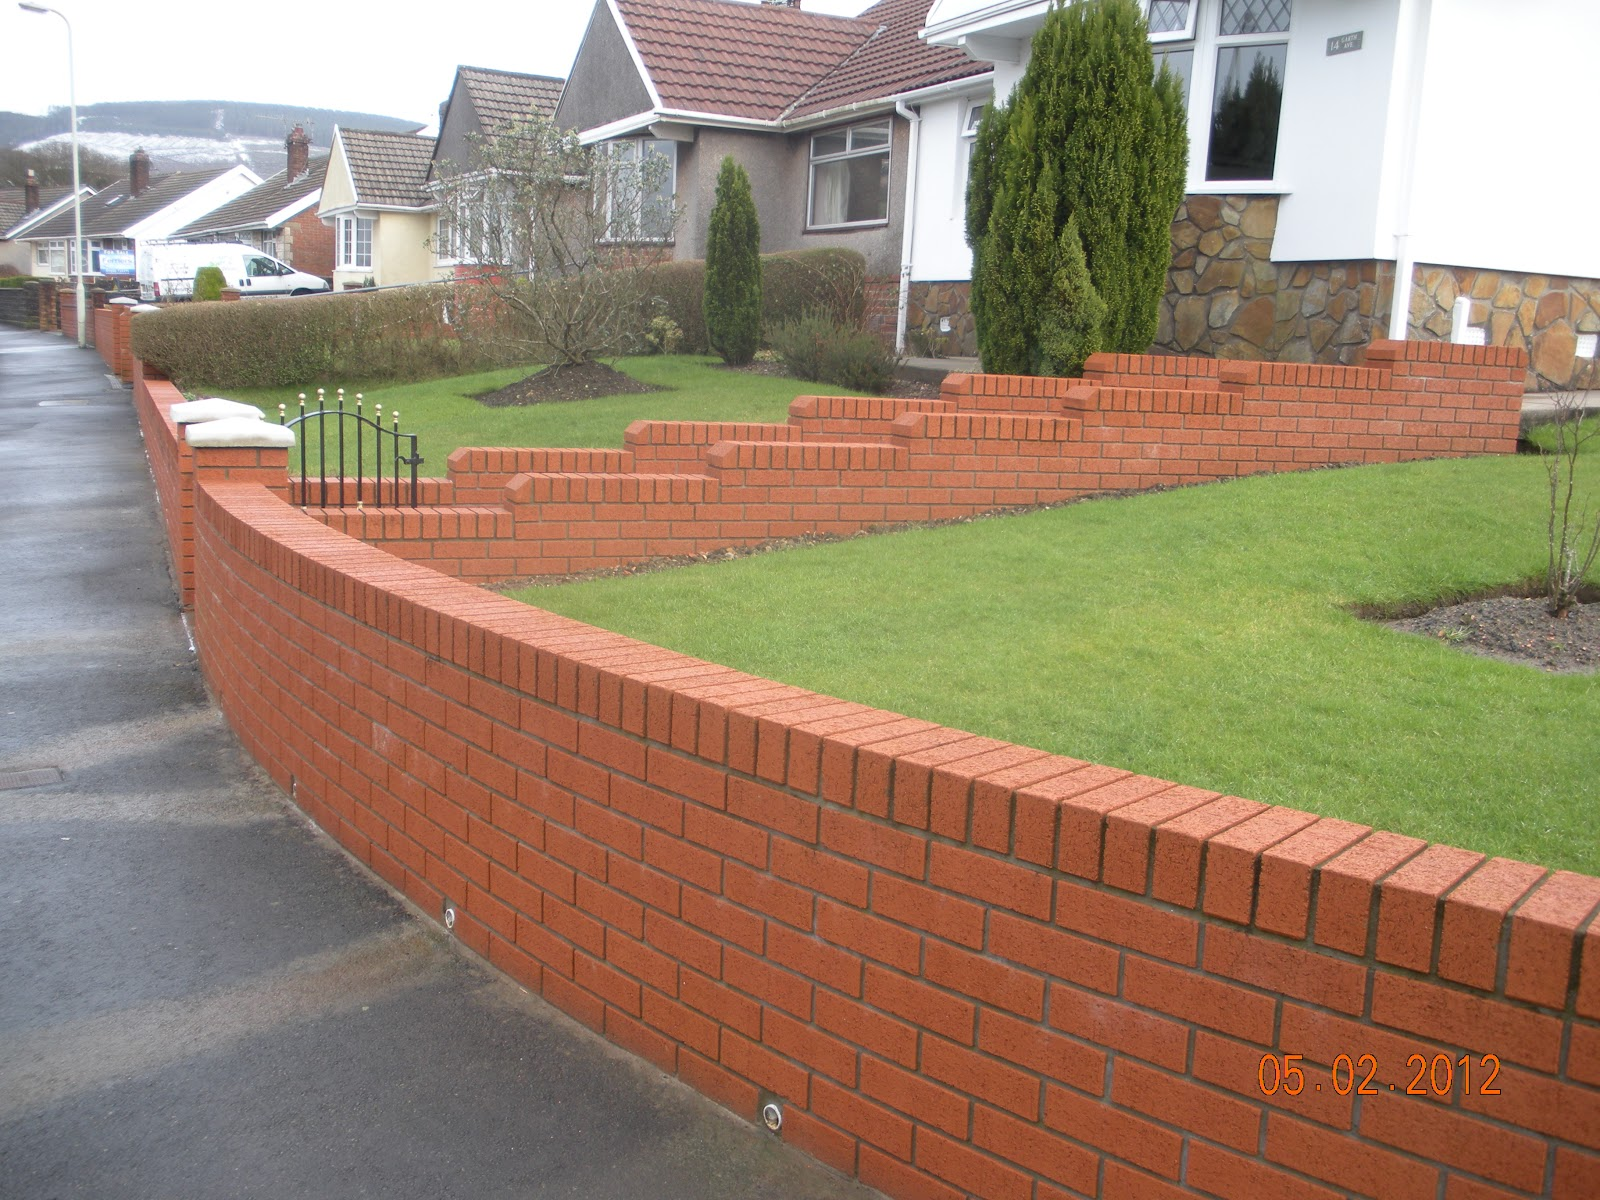 CWM LLYNFI BRICKLAYING 9 INCH RED FACE BRICK GARDEN WALL WITH